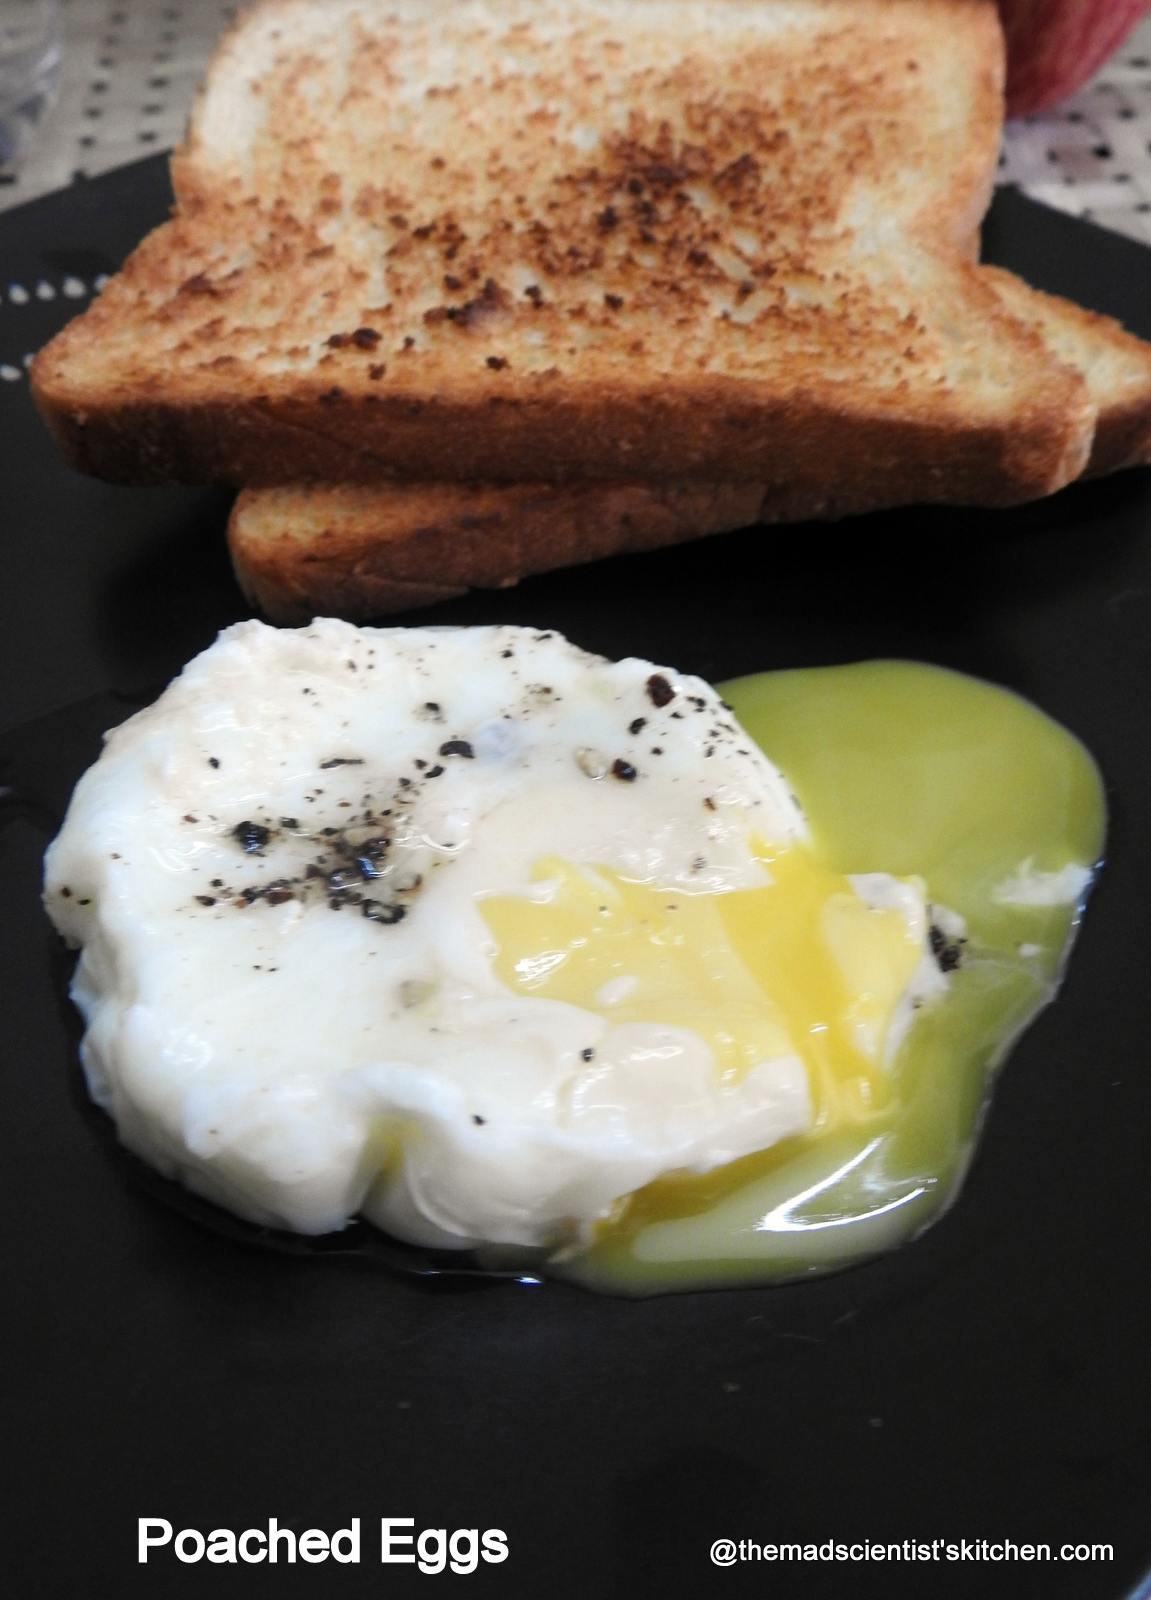 Poached Eggs, How to make Poached Eggs